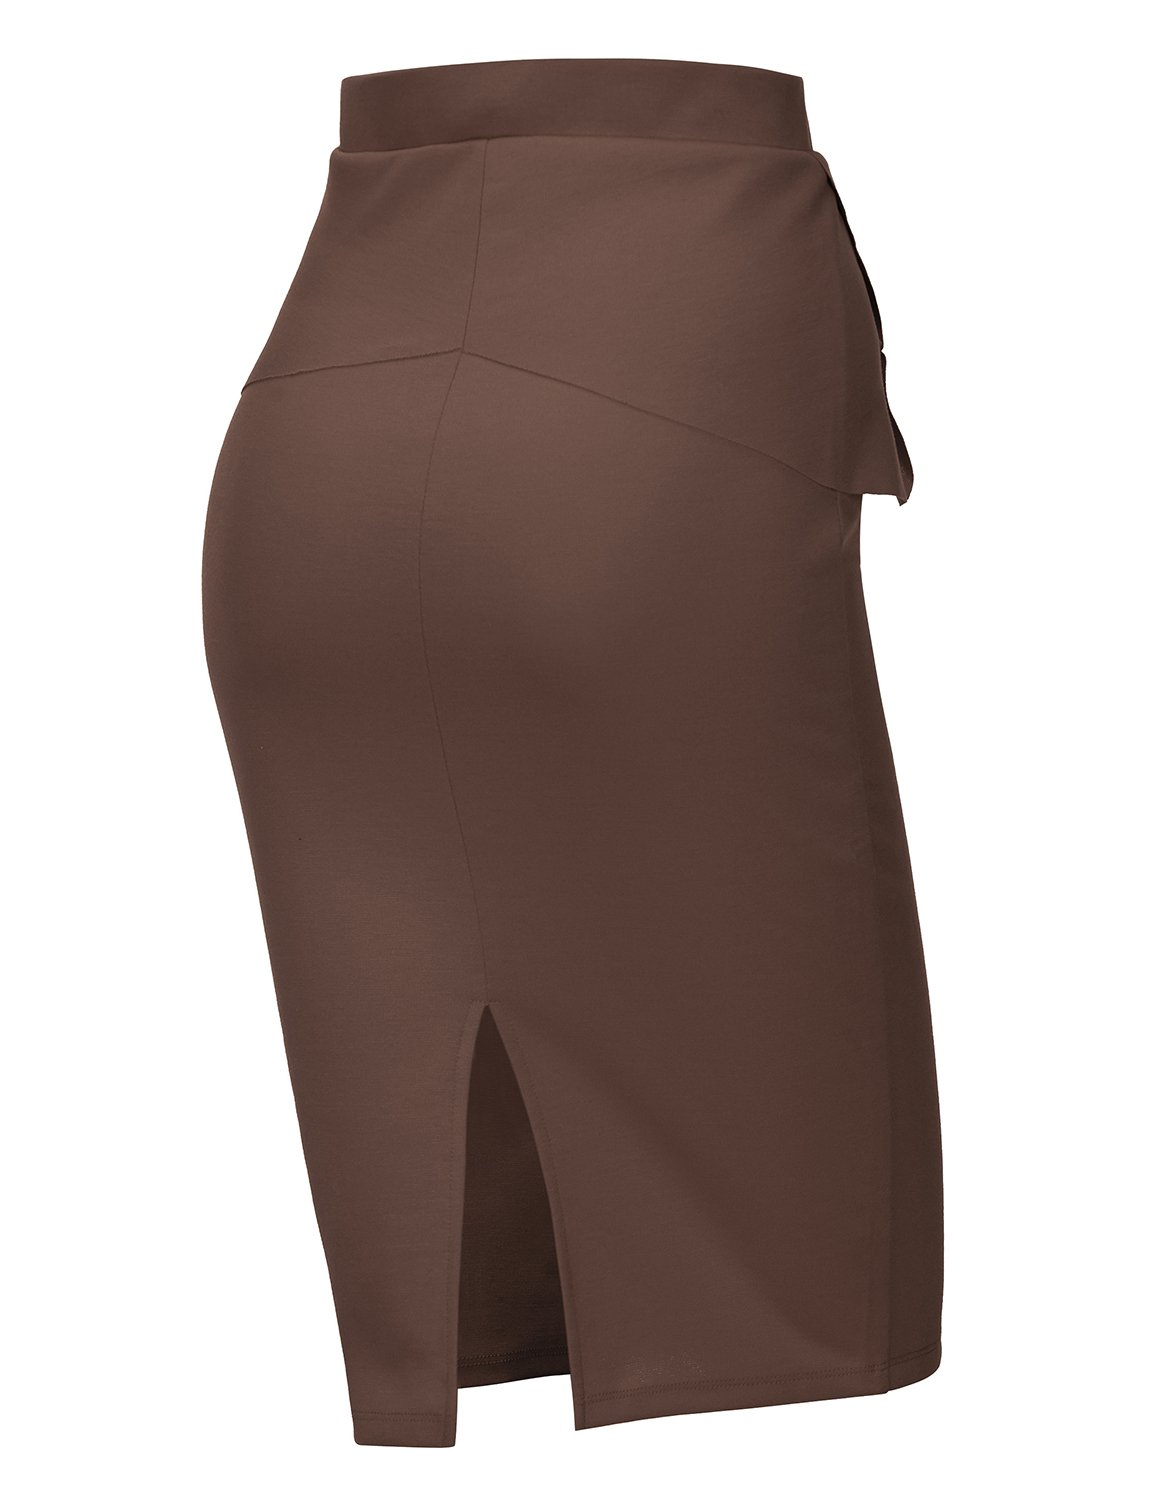 Regna X Womens high Waist Elastic Band Sexy Knee Length Skirts Brown XL by Regna X (Image #3)